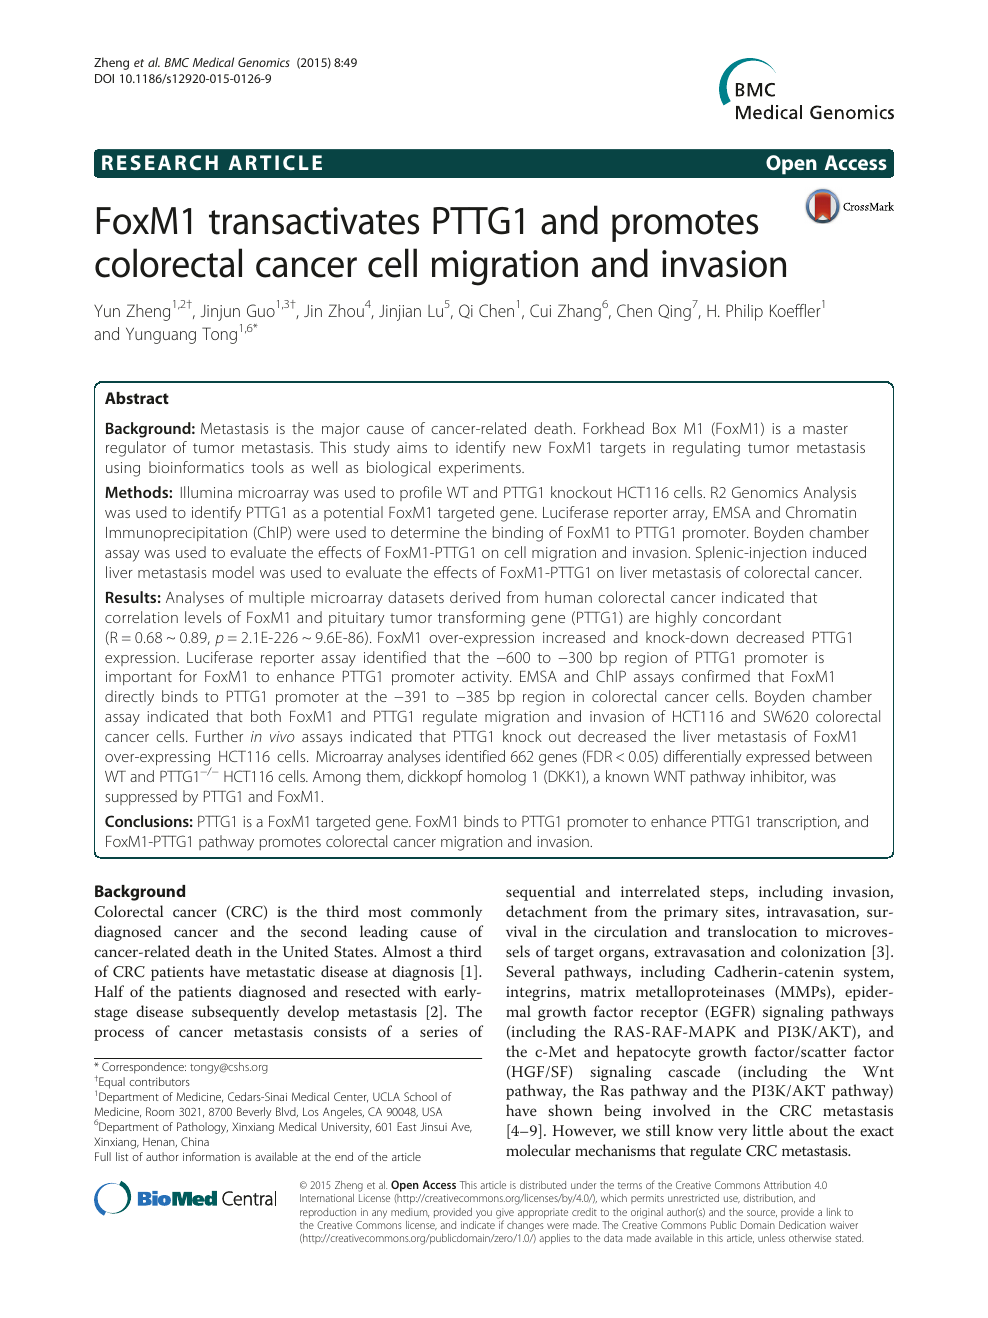 FoxM1 transactivates PTTG1 and promotes colorectal cancer cell